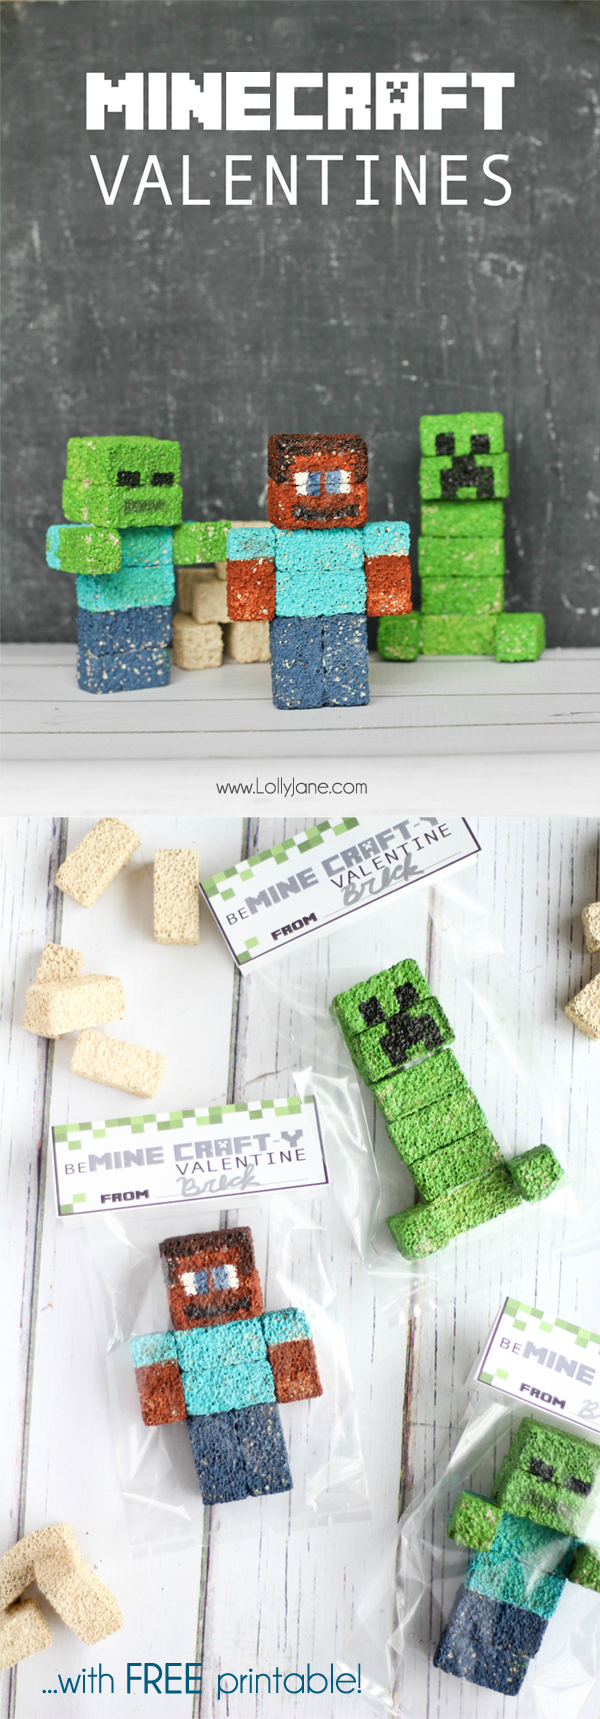 Minecraft-Valentines-FREE-printable-bag-toppers-Lolly-Jane_edited-1